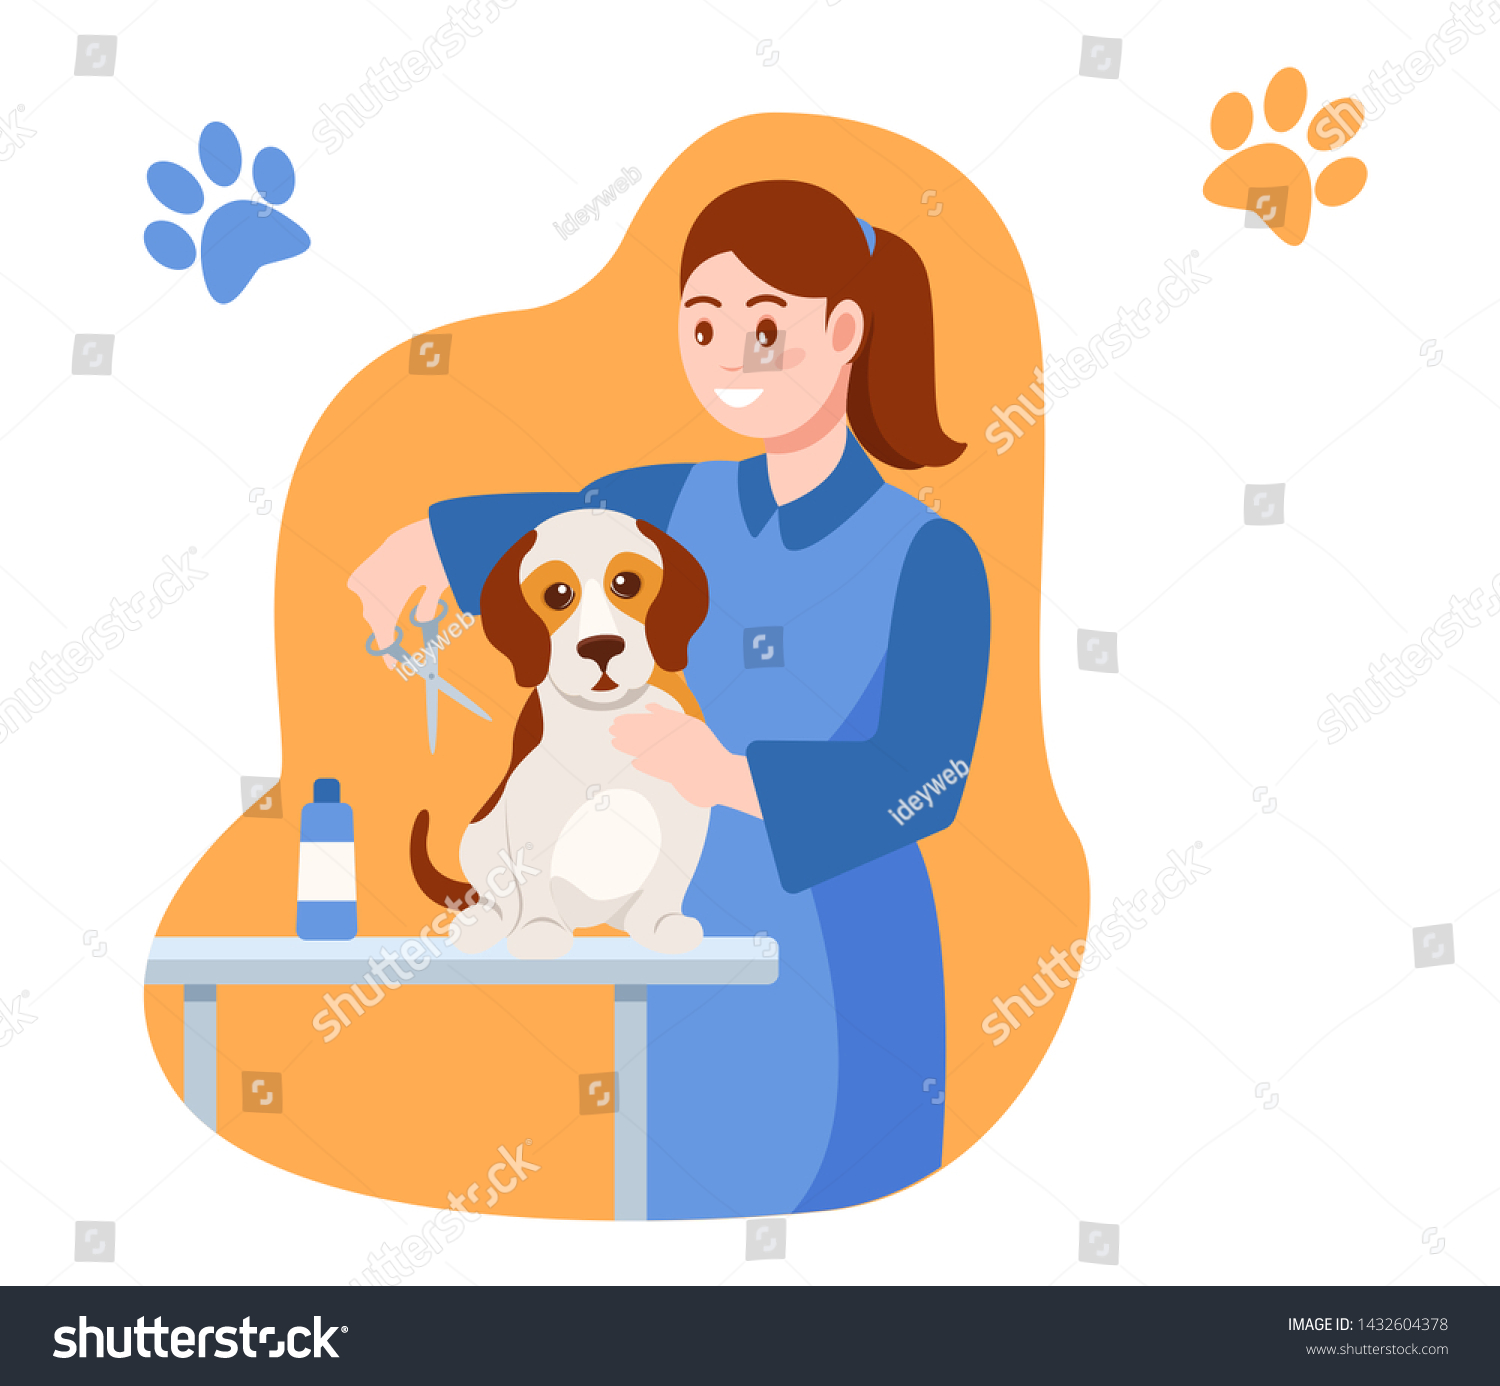 Taking Care Of Animals Clipart - Horse And Girl Clipart - Free Transparent  PNG Clipart Images Download